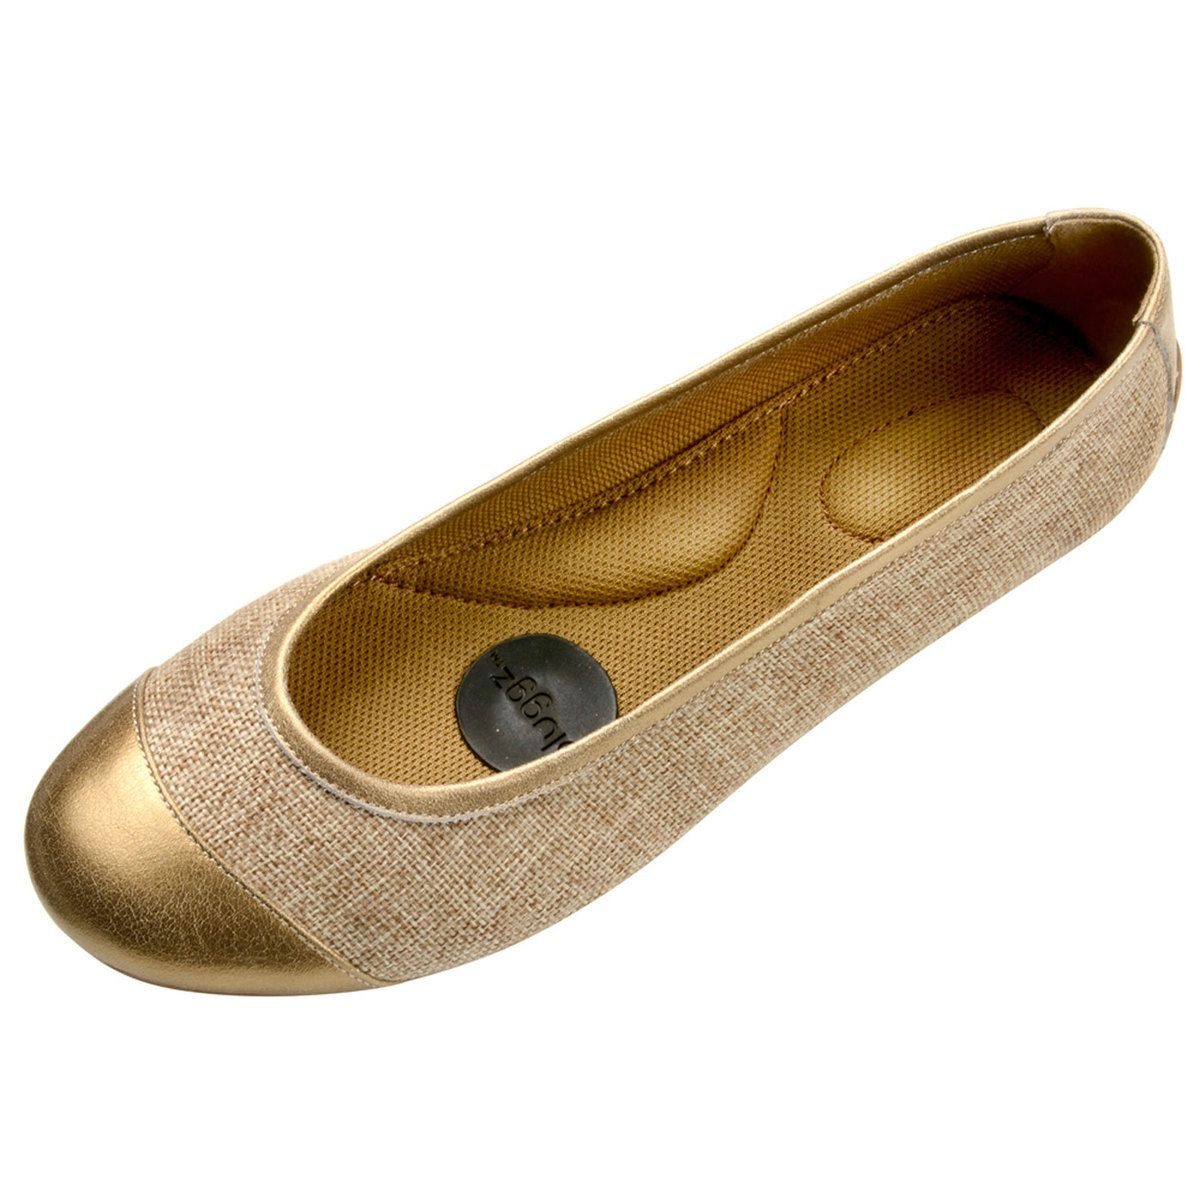 Linen + Leather Flats - memory foam and trampoline soles...